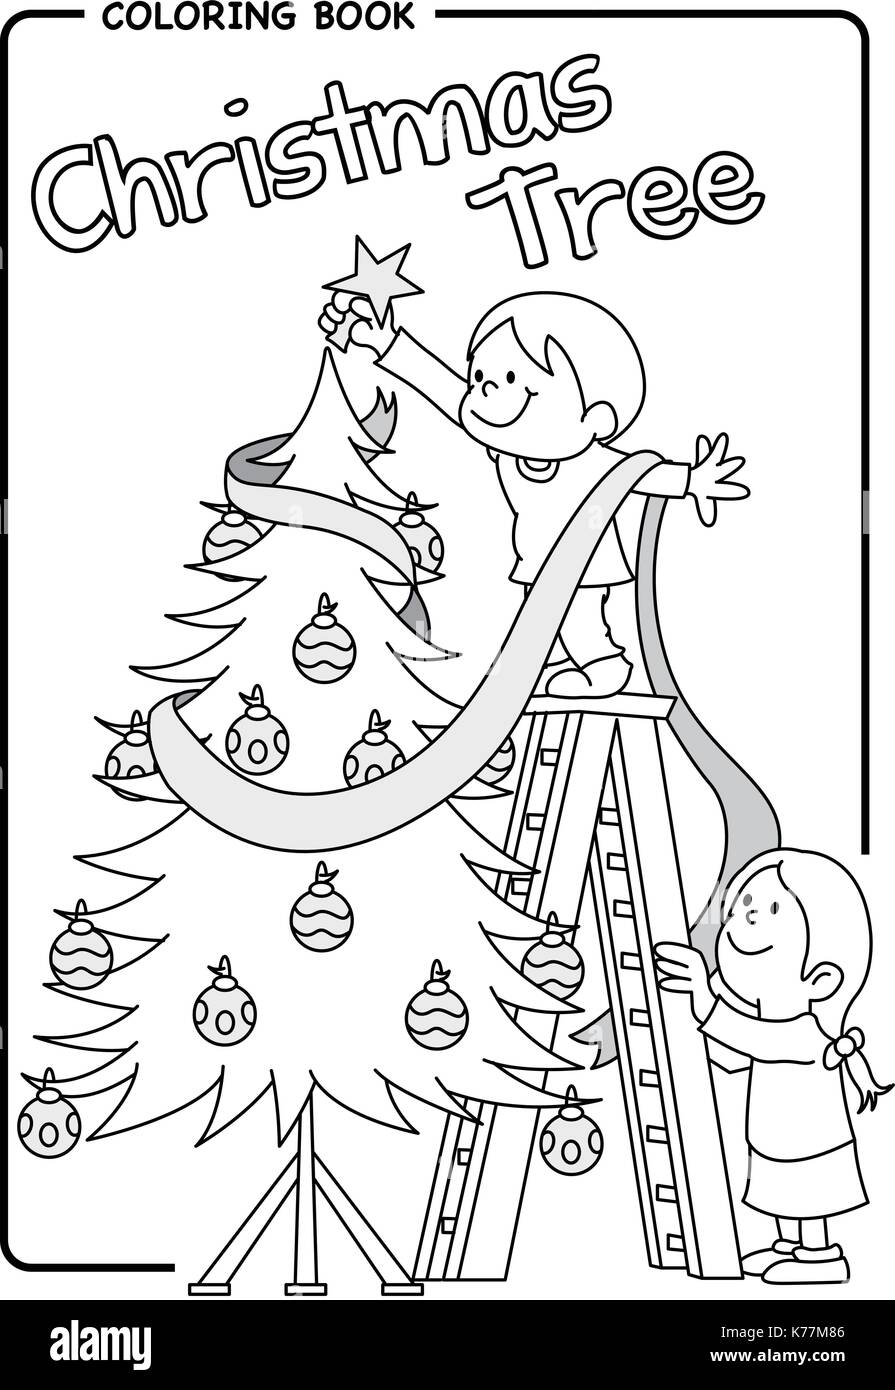 Pair Of Children Decorating The Christmas Tree Using A Ladder Stock